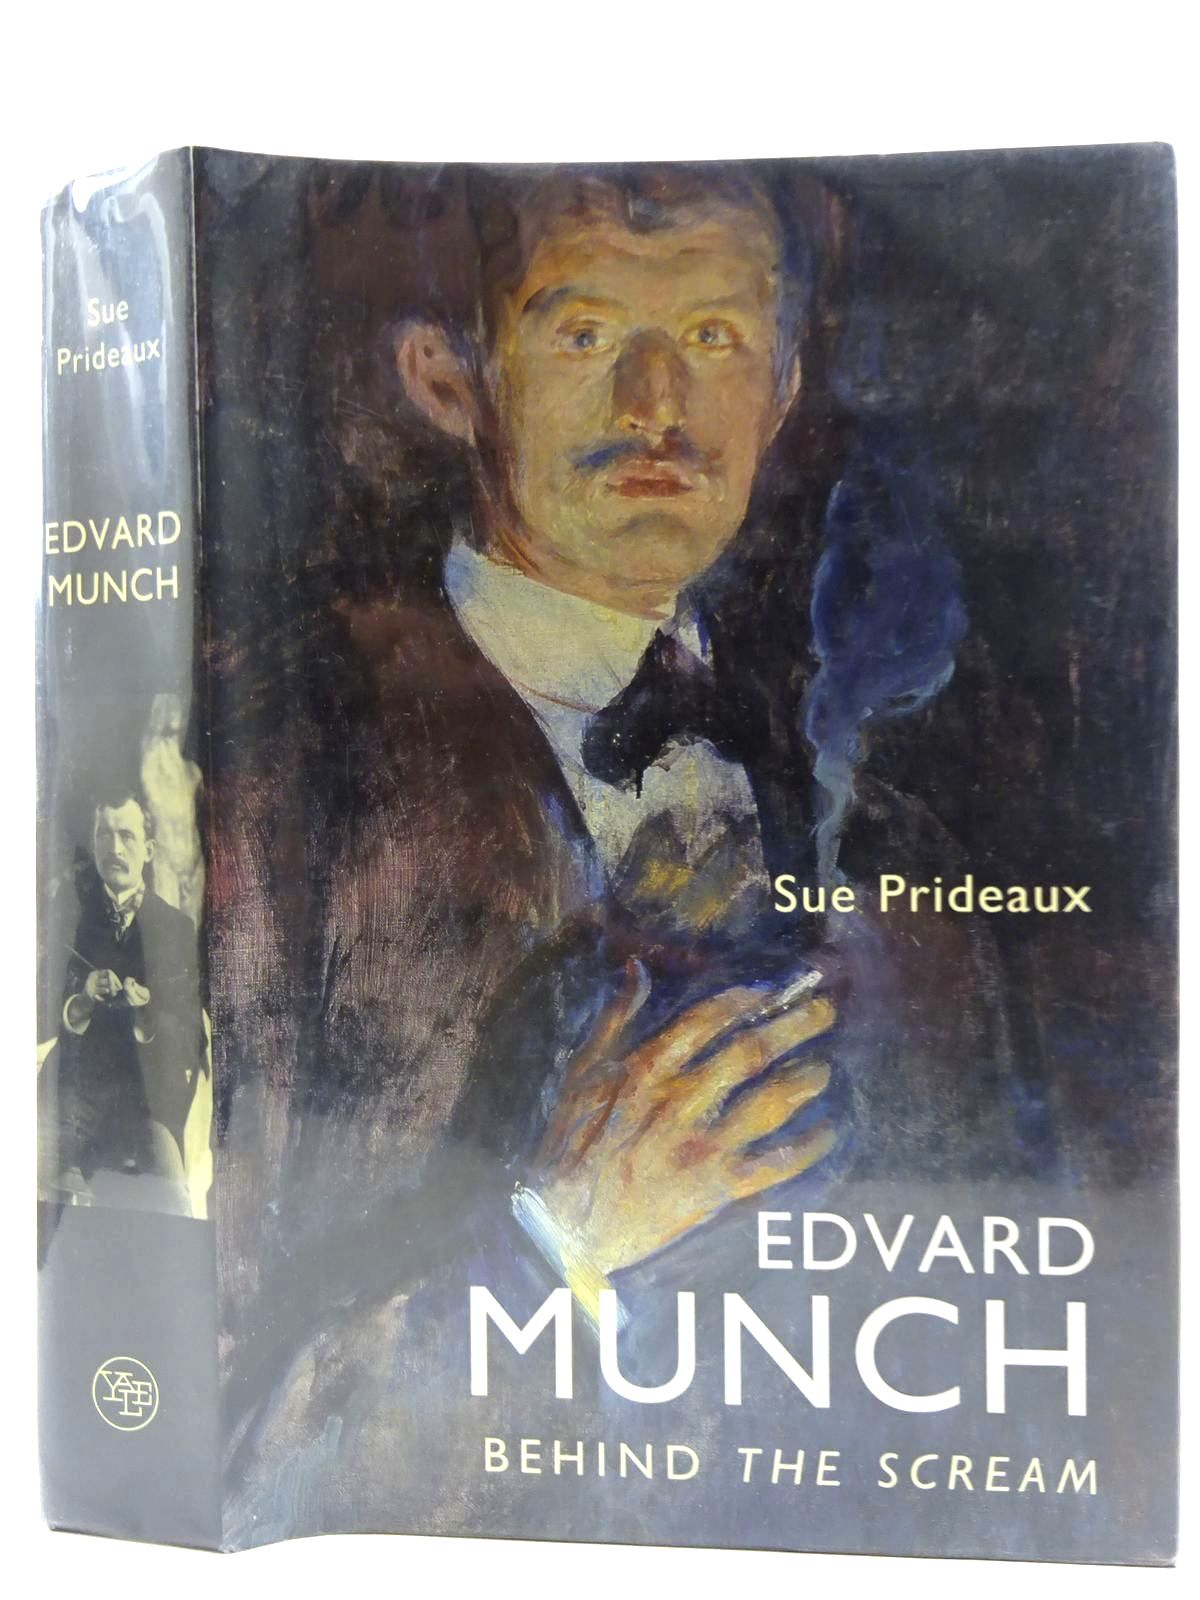 Photo of EDVARD MUNCH BEHIND THE SCREAM written by Prideaux, Sue illustrated by Munch, Edvard published by Yale University Press (STOCK CODE: 2128659)  for sale by Stella & Rose's Books